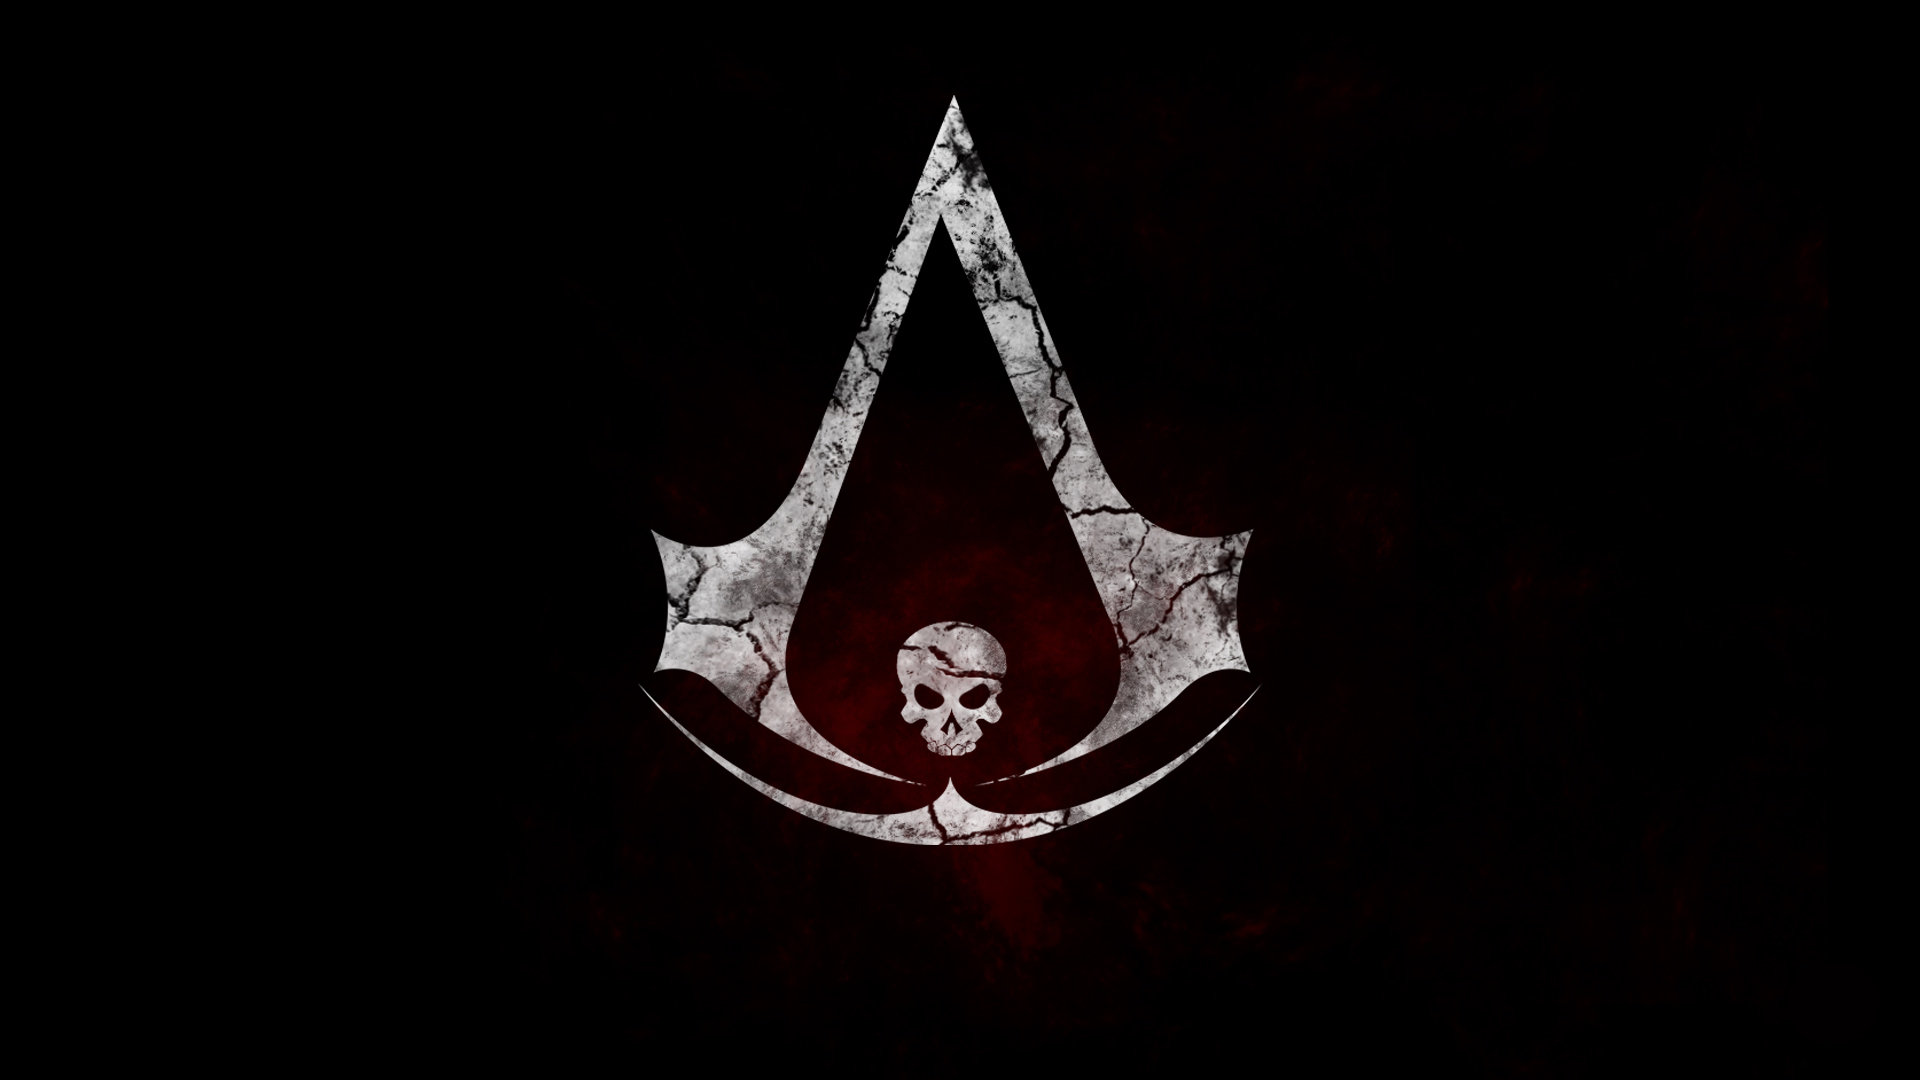 Download hd 1920x1080 Assassin's Creed 4: Black Flag desktop wallpaper ID:234541 for free